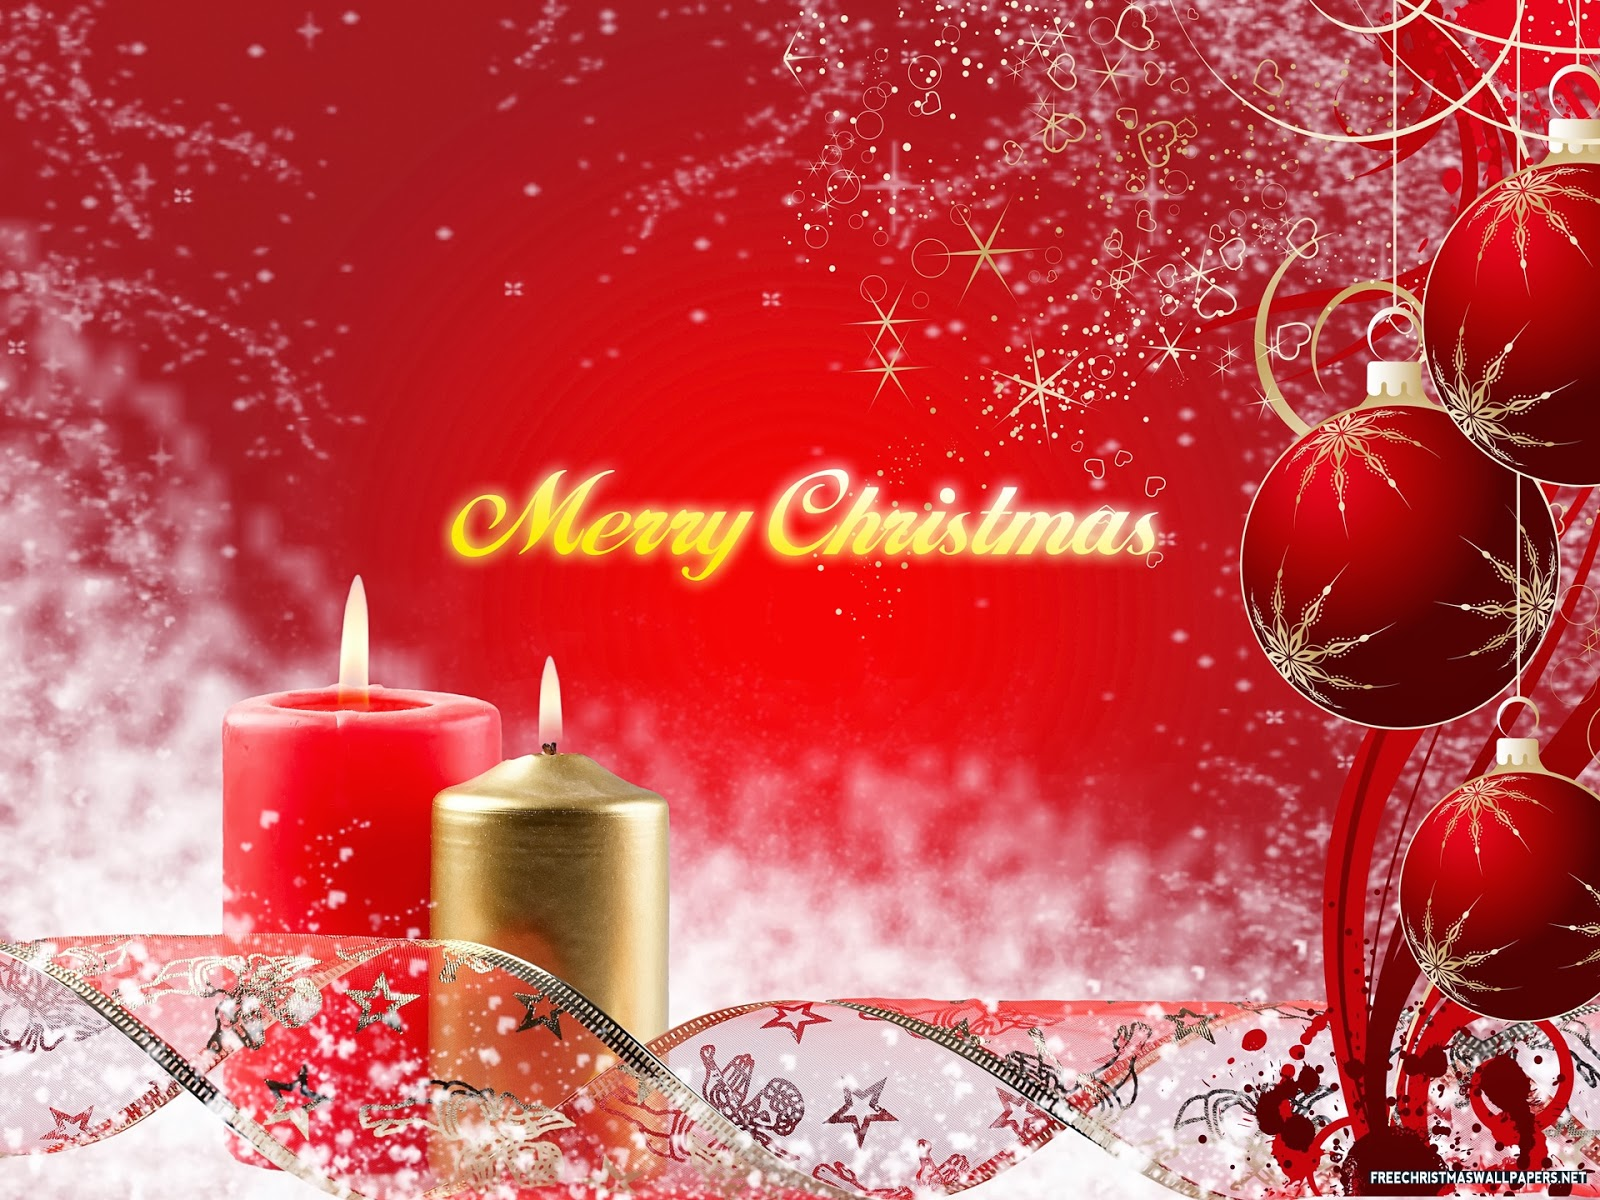 Merry Christmas Wishes Poster | Wishes and Quotes Poster